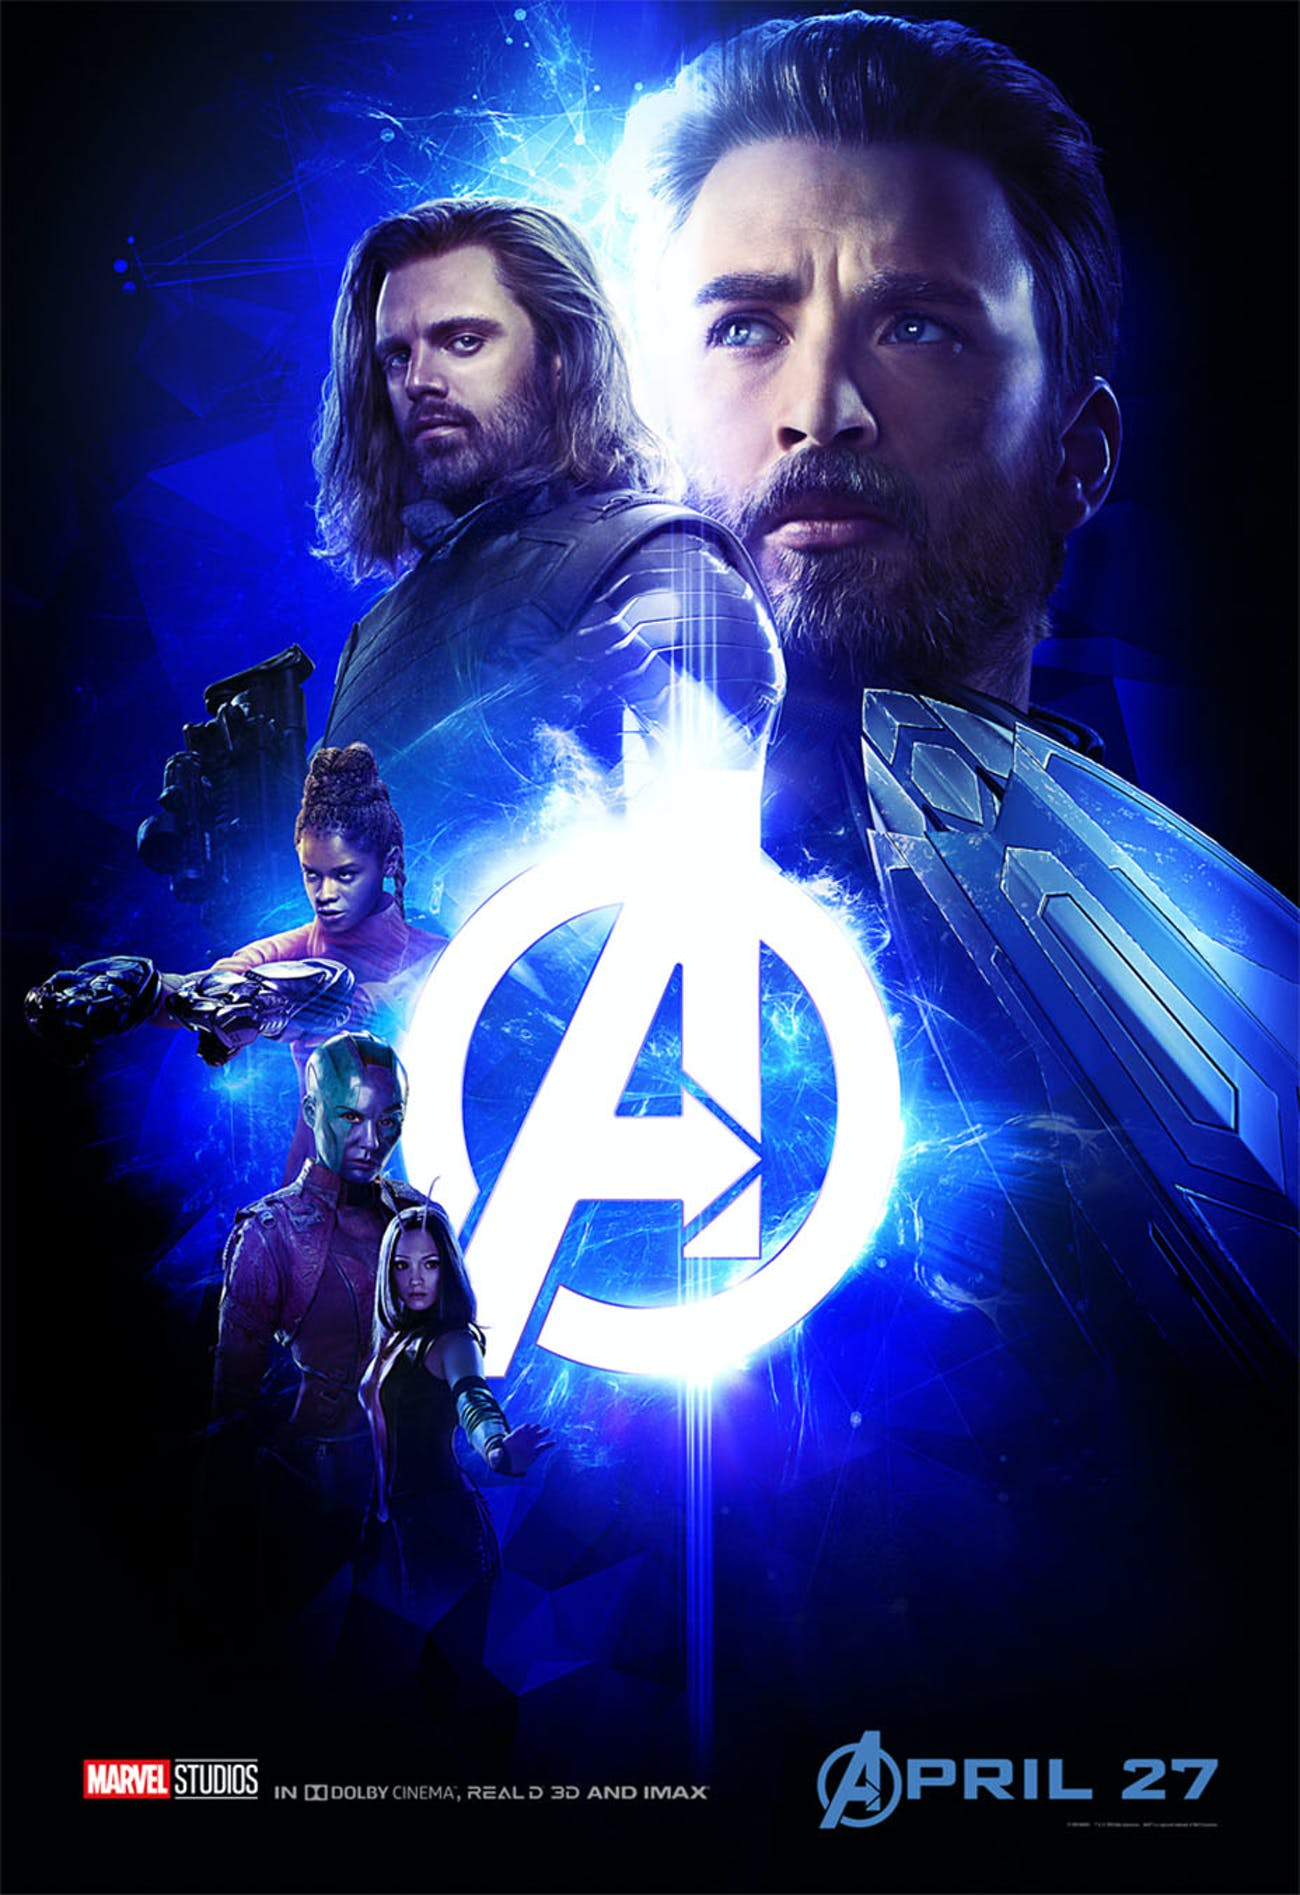 5 'Infinity War' Posters Reveal the New Avengers Team-Ups